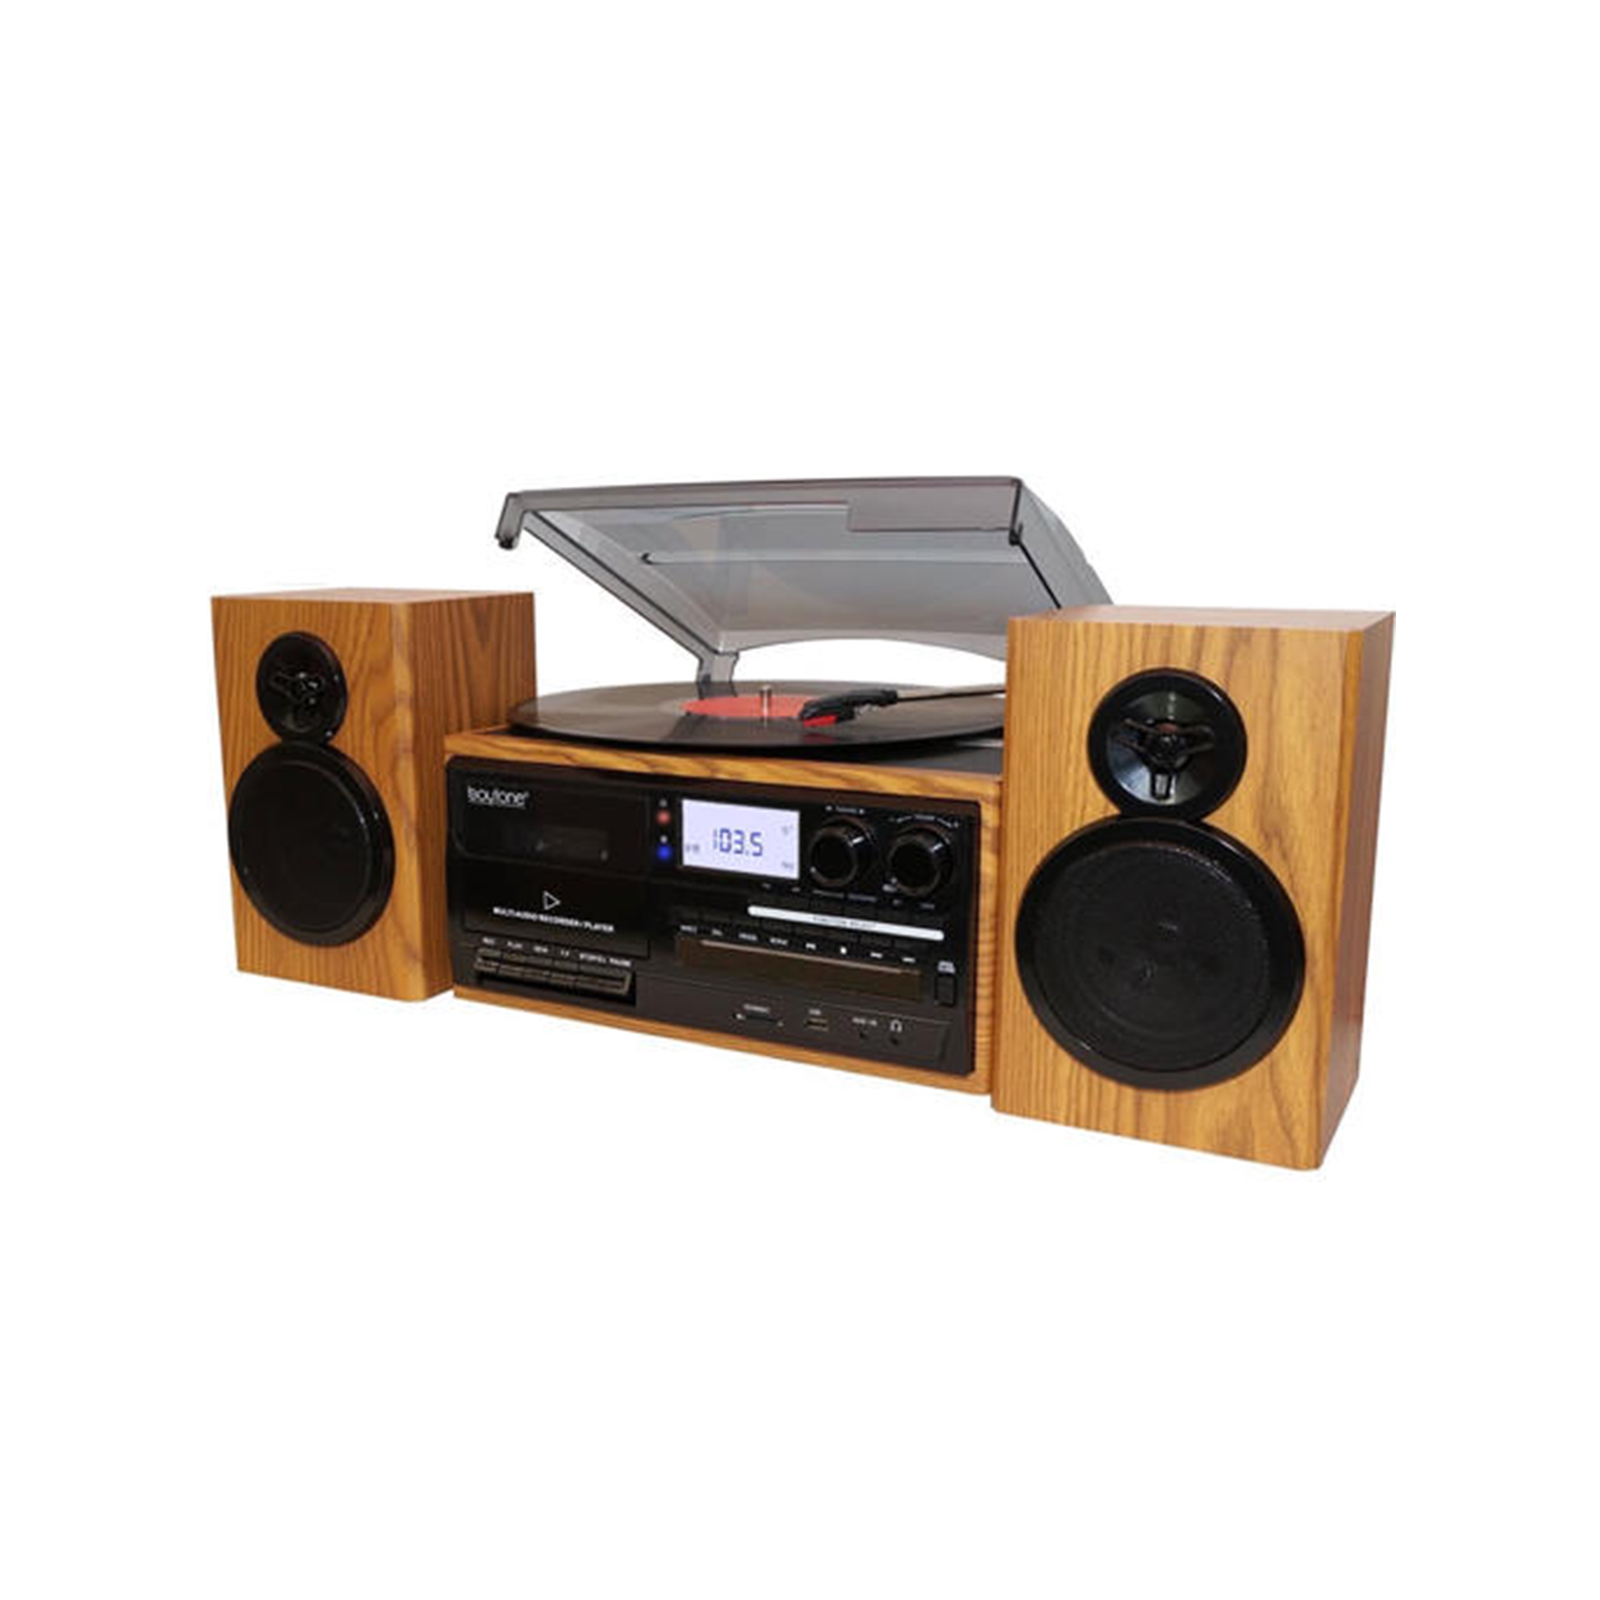 Boytone BT28SPW, Bluetooth Classic Style Record Player Turntable With AMFM  Radio, CD Cassette Player